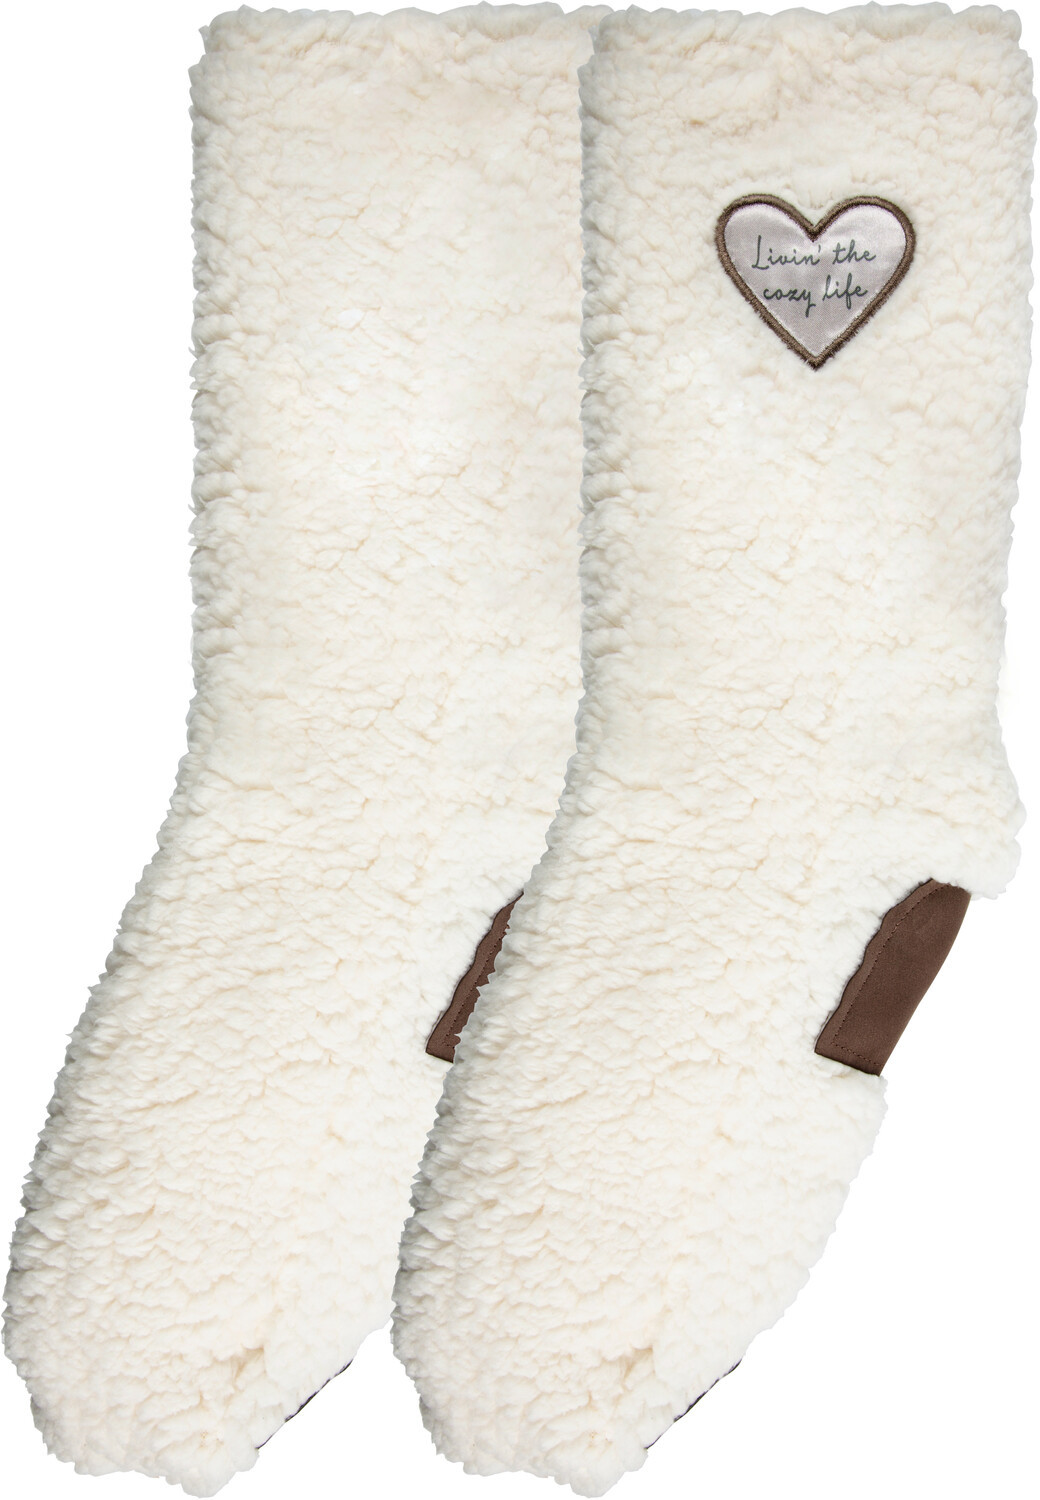 Cozy Life by Comfort Collection - Cozy Life - One Size Fits Most Sherpa Slipper